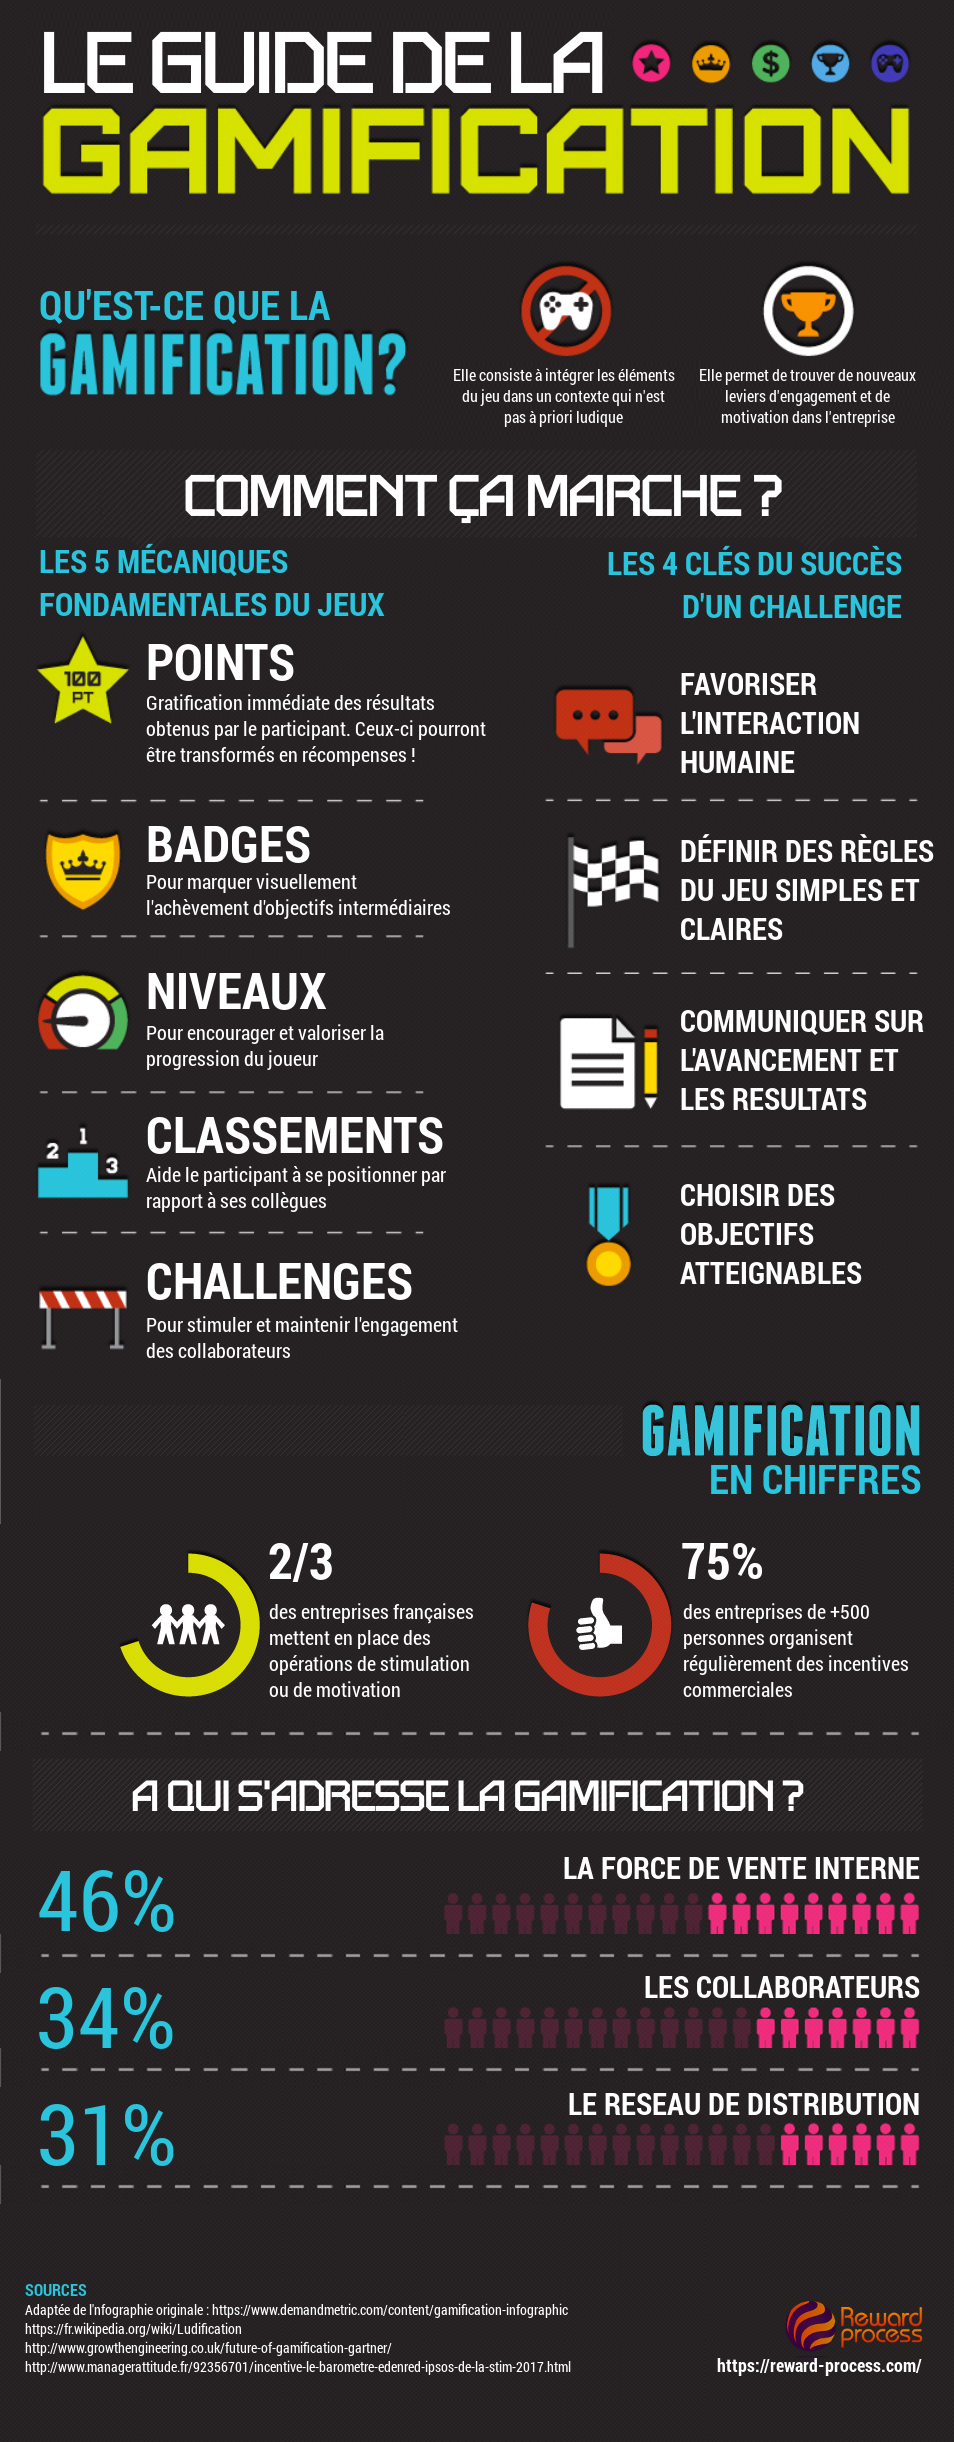 Infographie gamification guide reward process